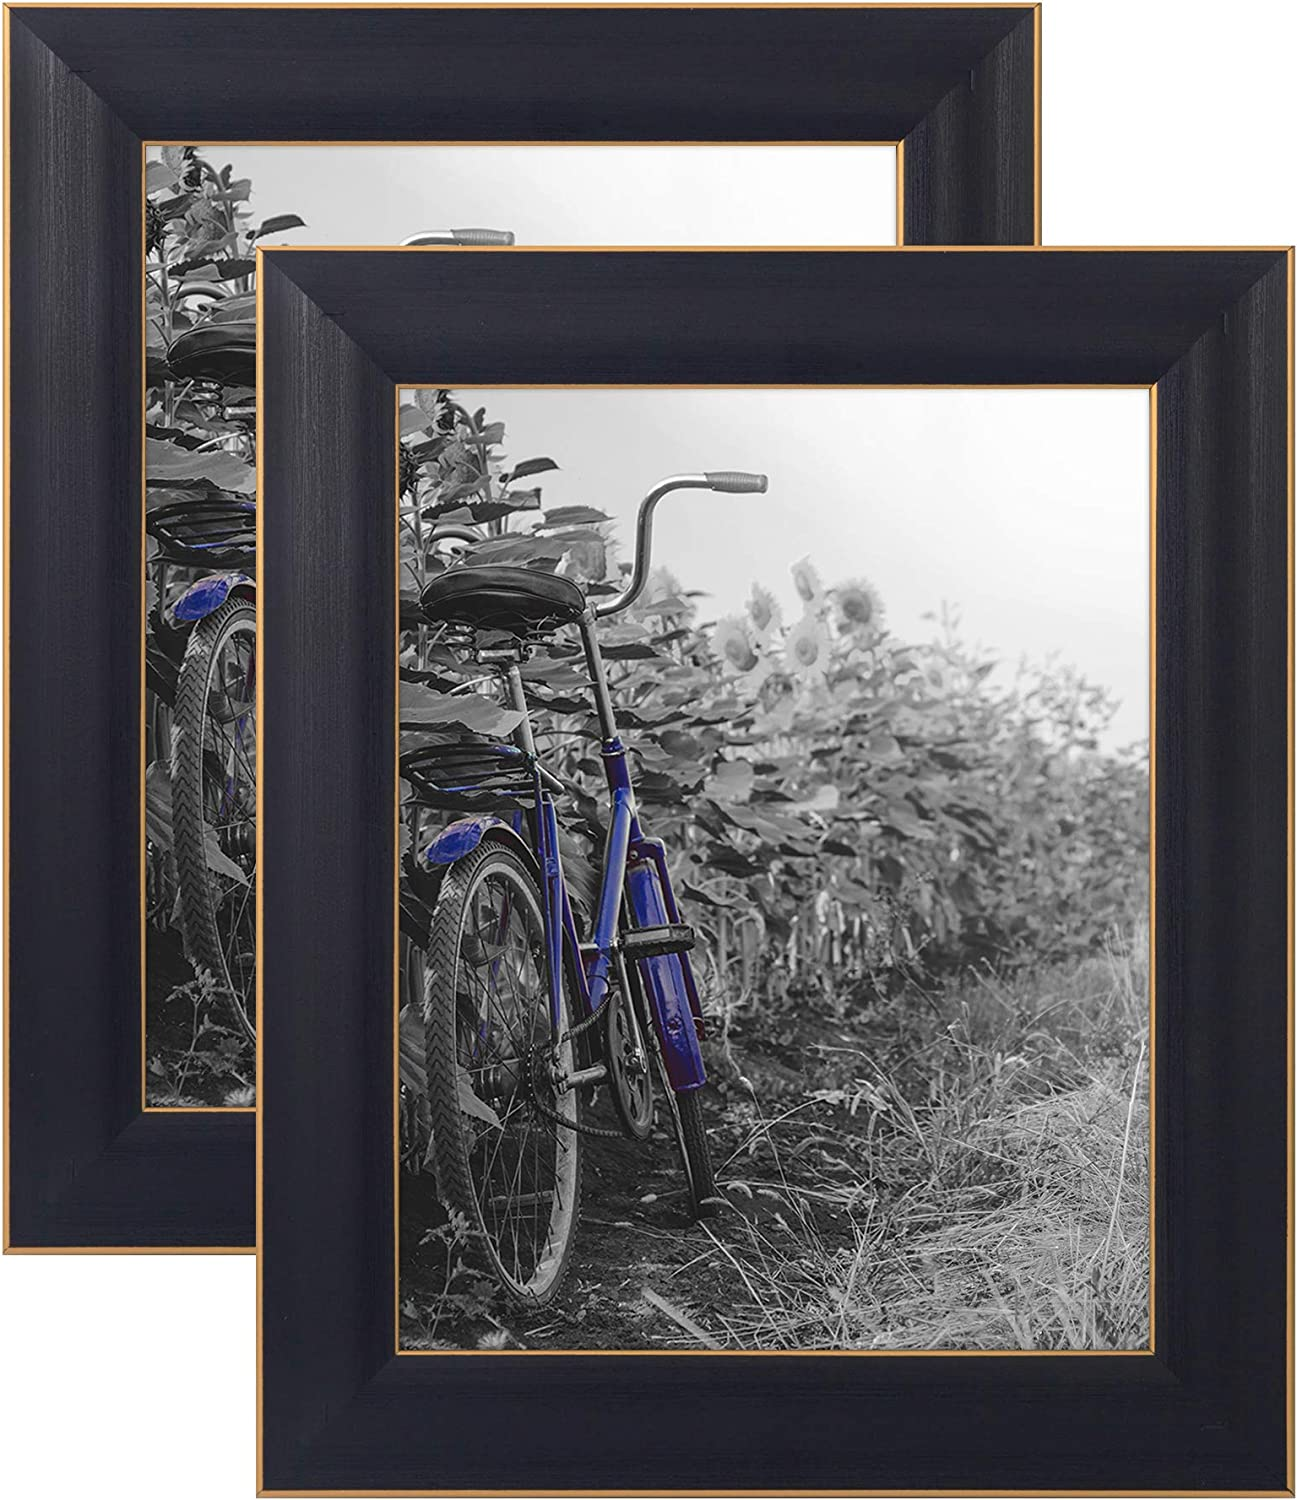 Americanflat 8x10 Rustic Black Picture Frame with Polished Glass